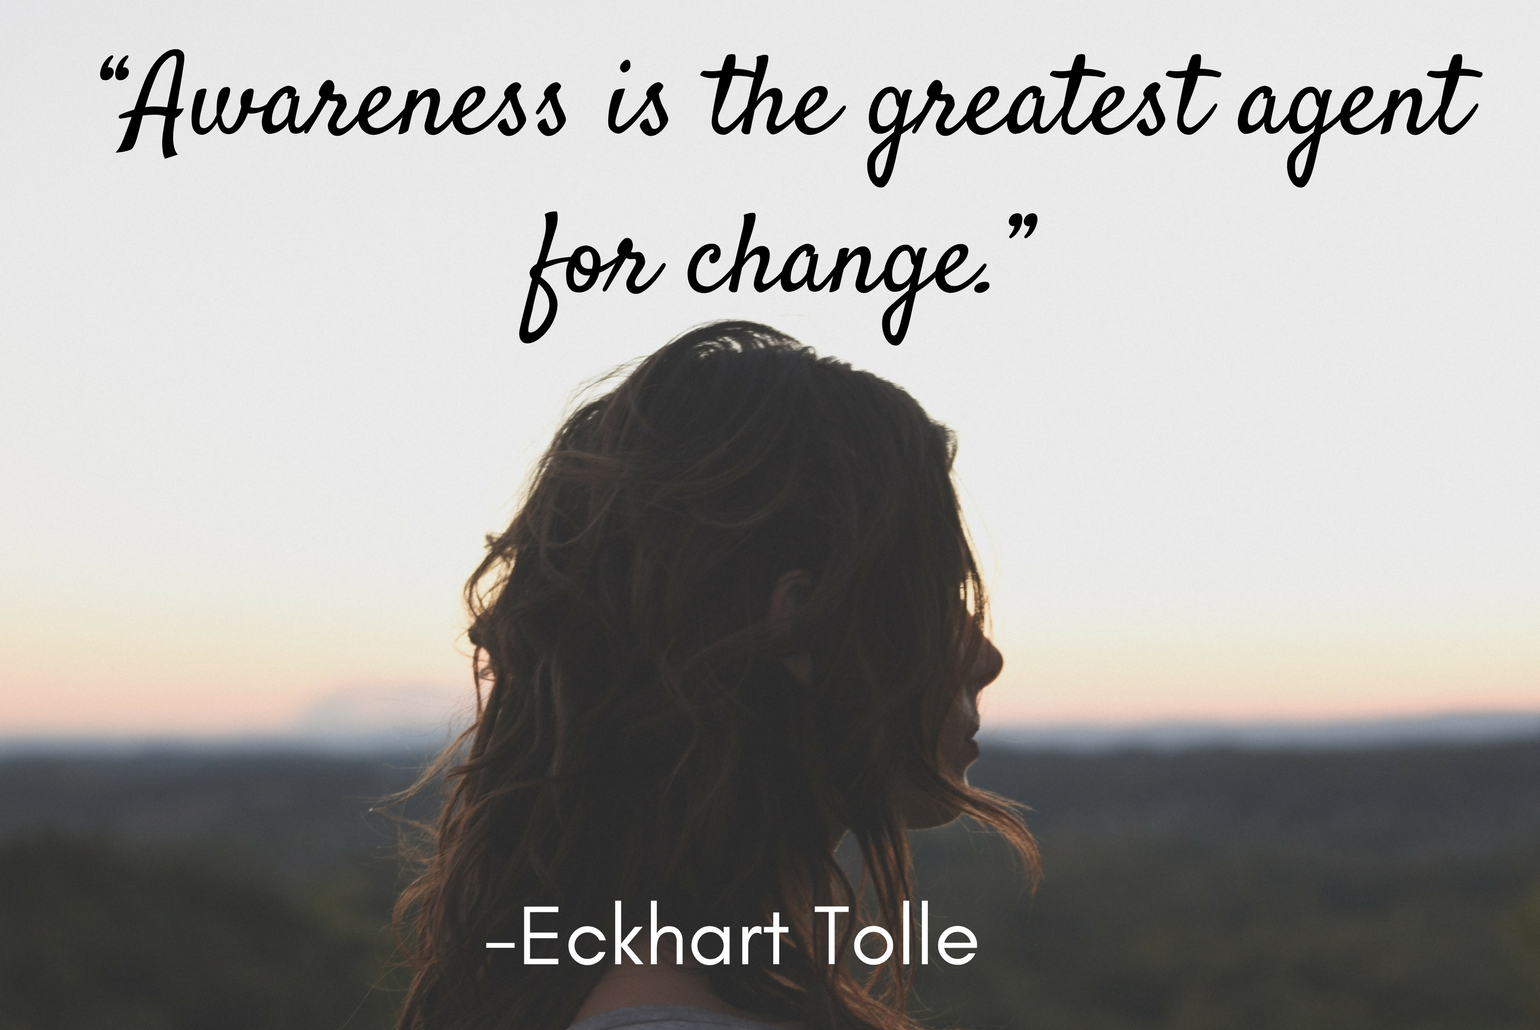 self-awareness, self-confidence, consciousness, self-help, personal development, self-awareness quote, eckhart tolle, awareness is the greatest agent for change